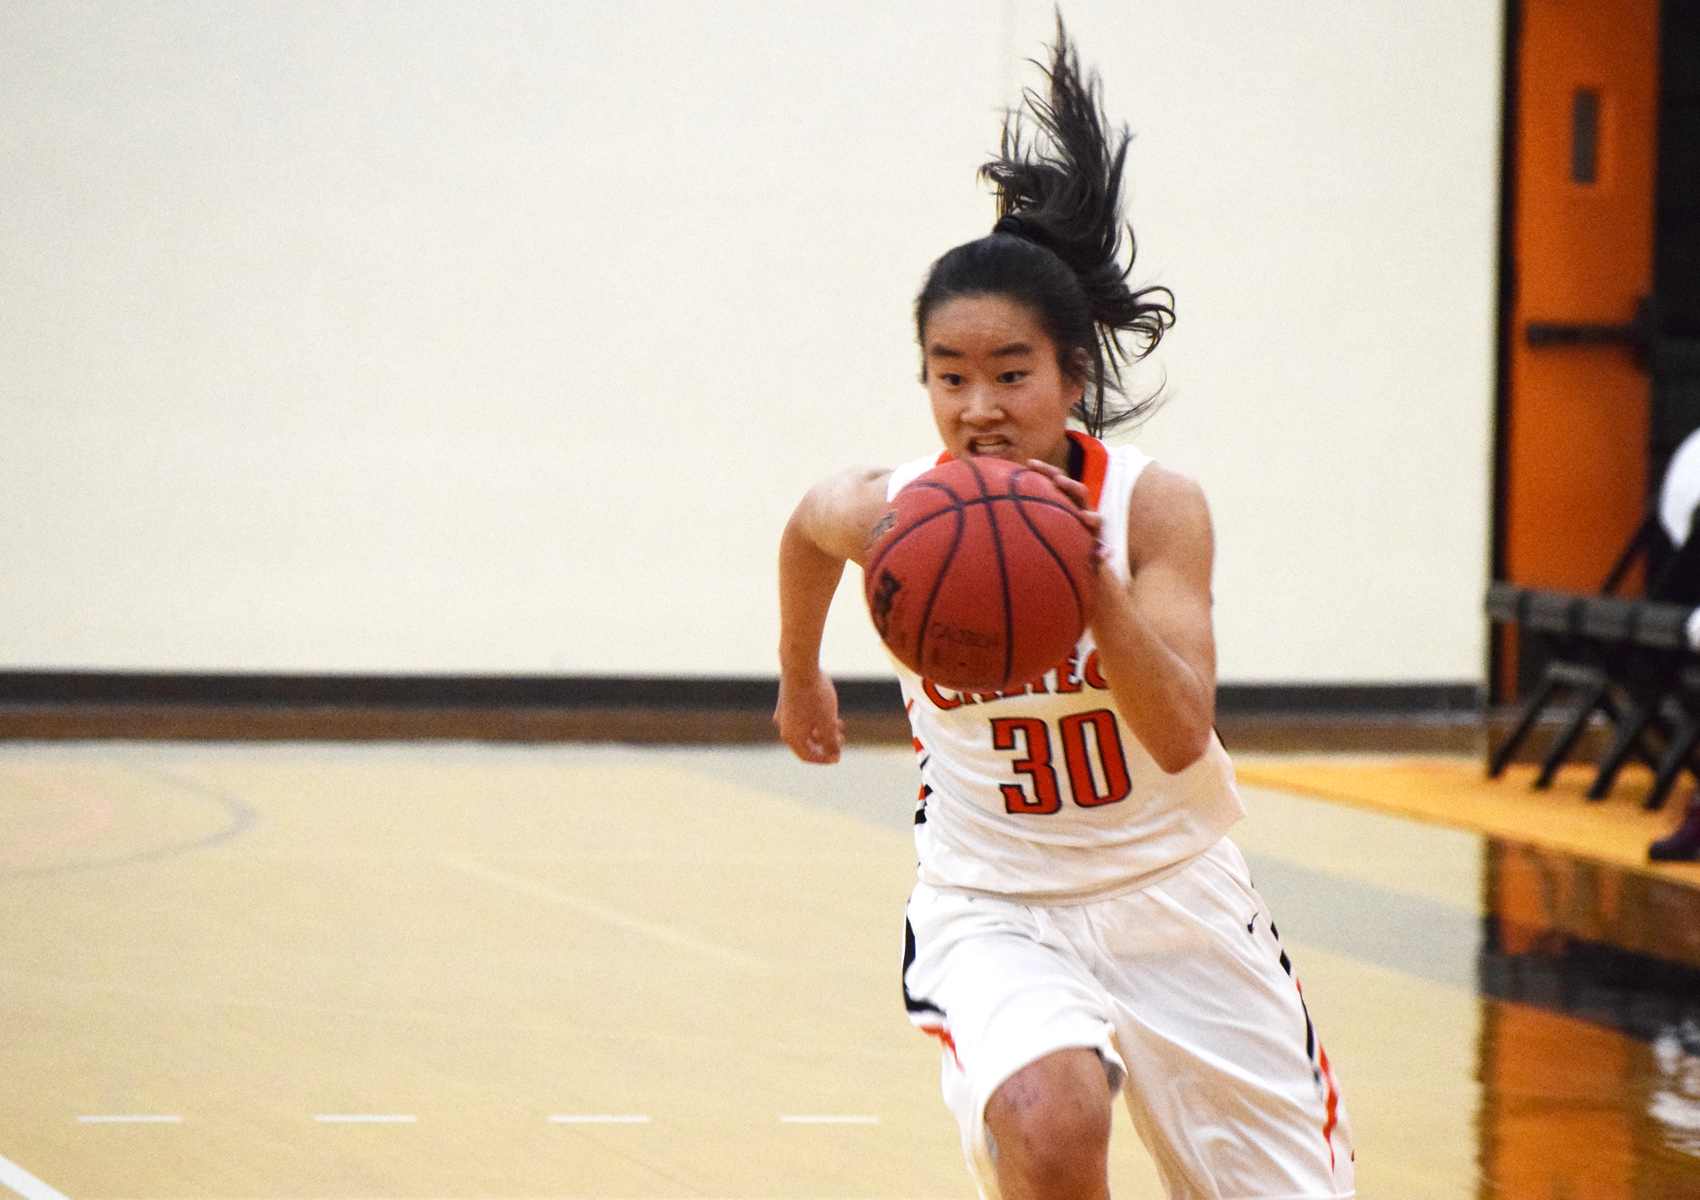 Peng Drives Scoring Again Against Redlands